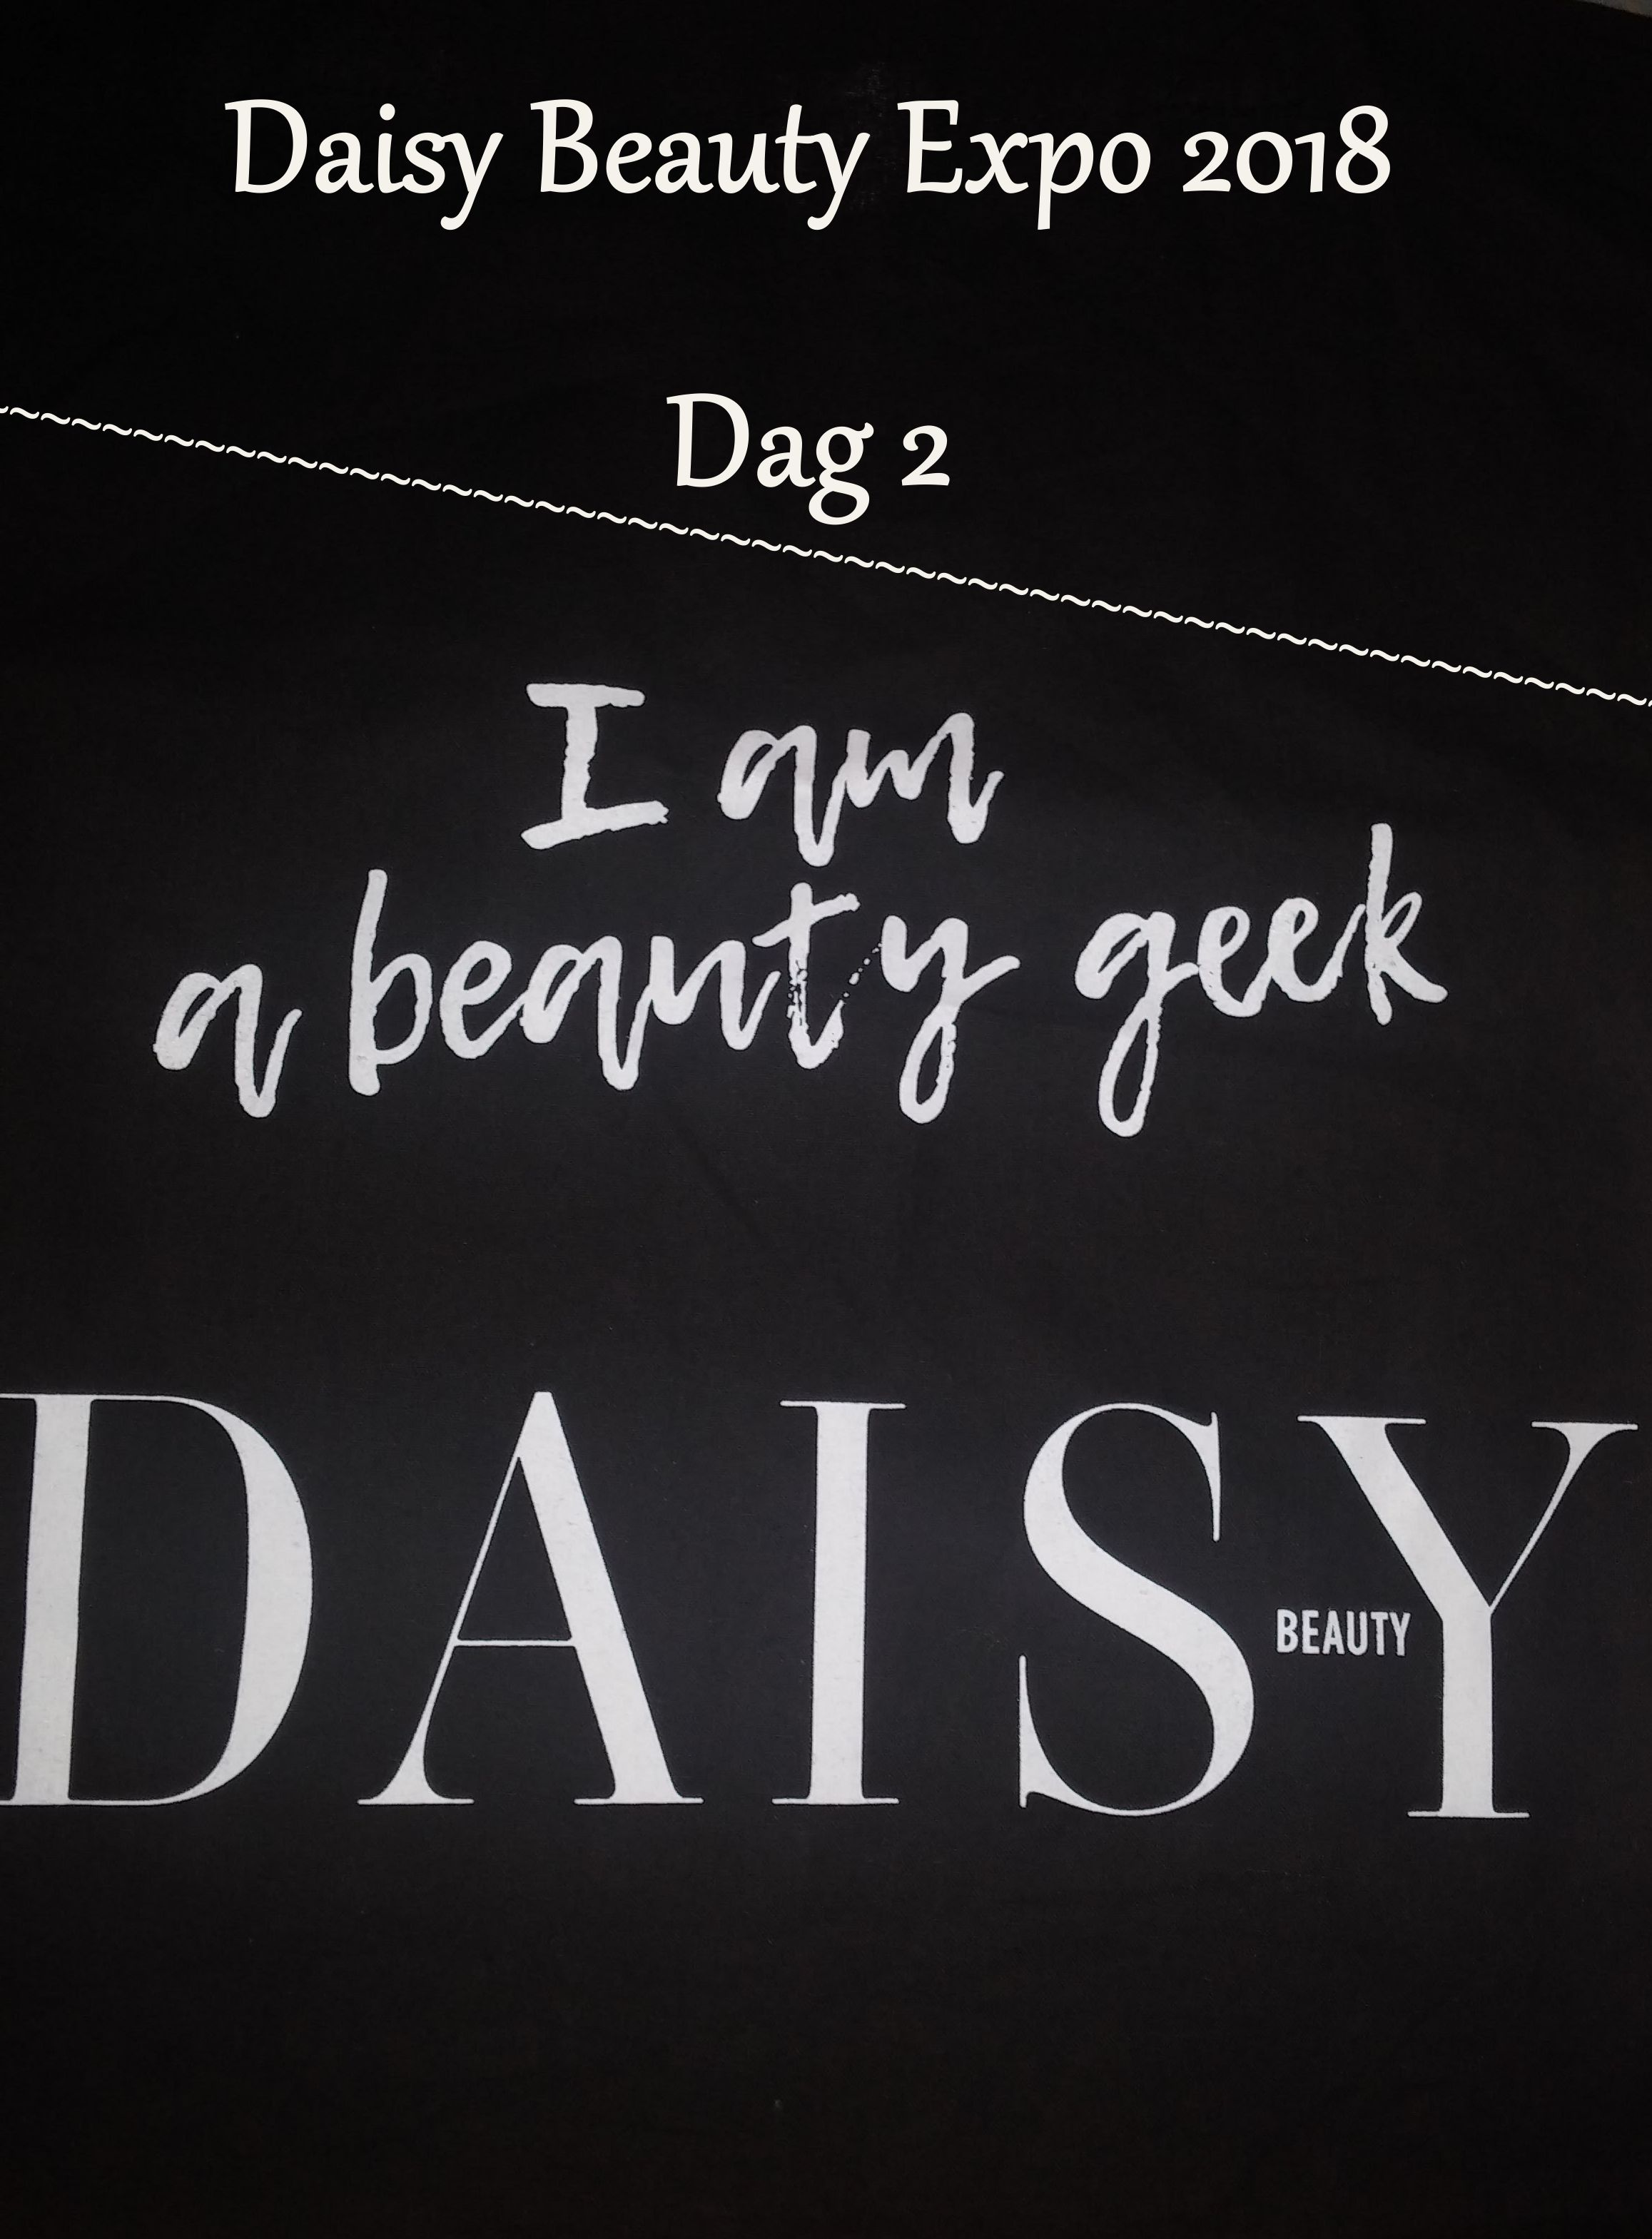 Daisy Beauty Expo 2018 Dag 2.